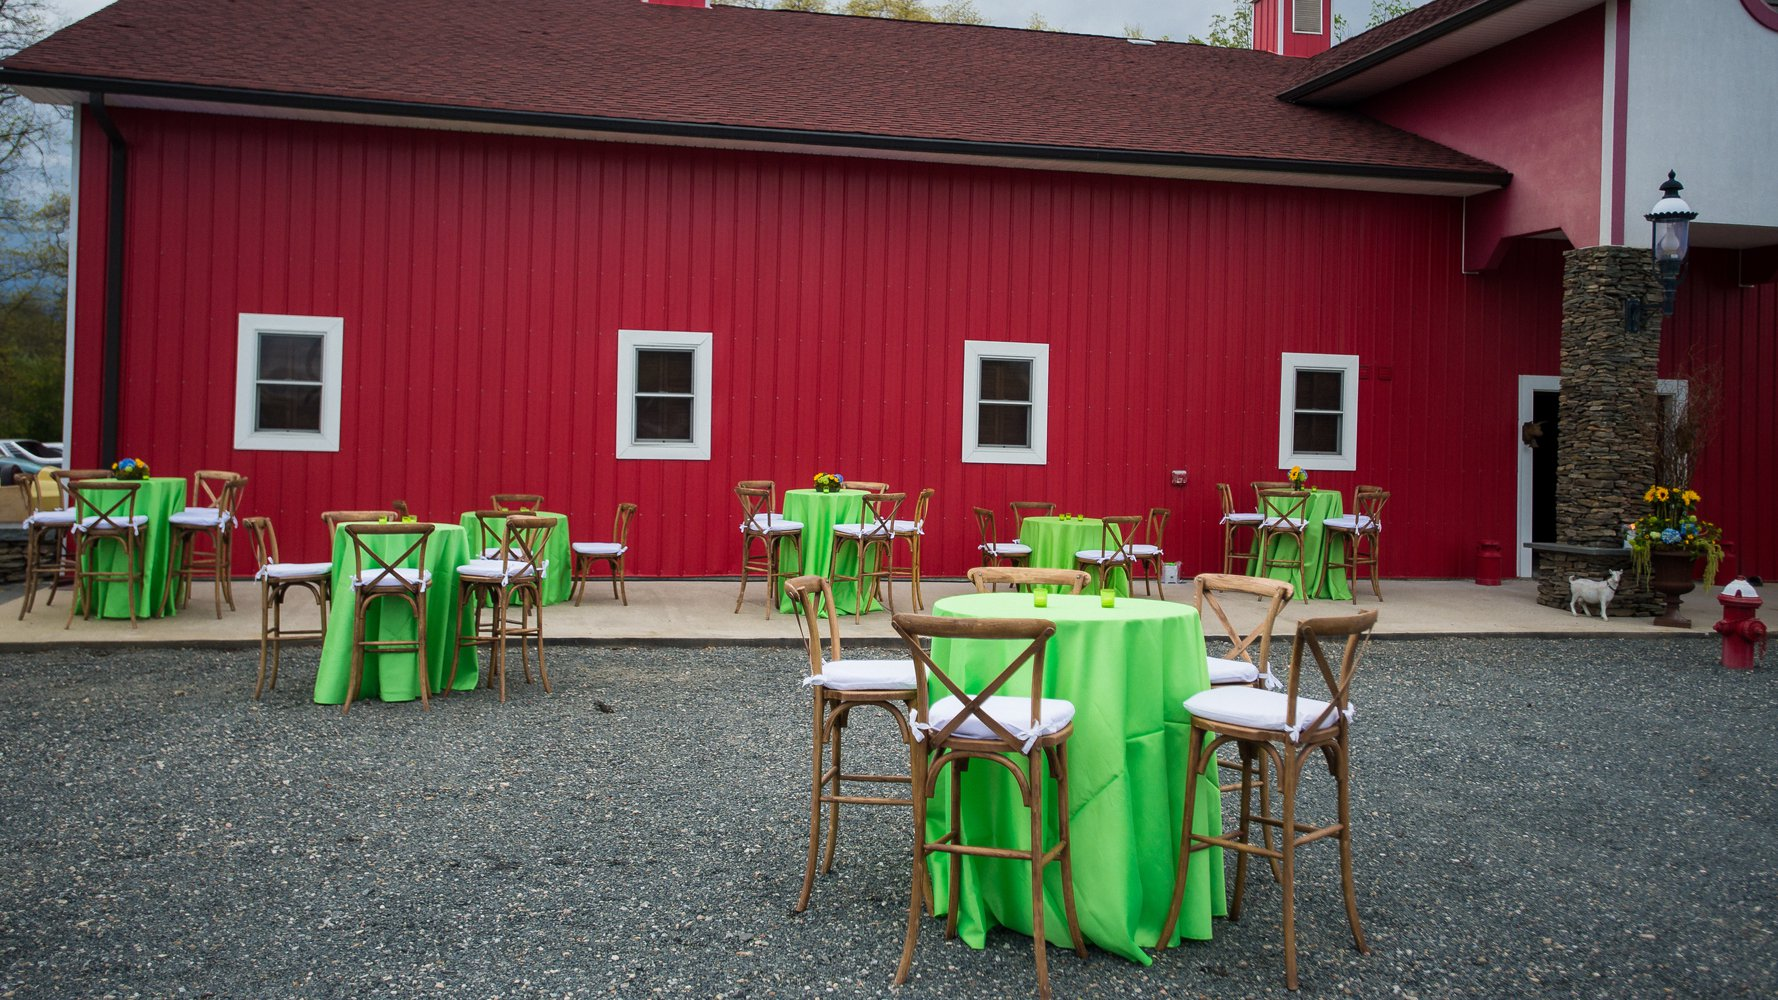 Campo Grande Acres NJ venue entry gate barn cocktail hour setup